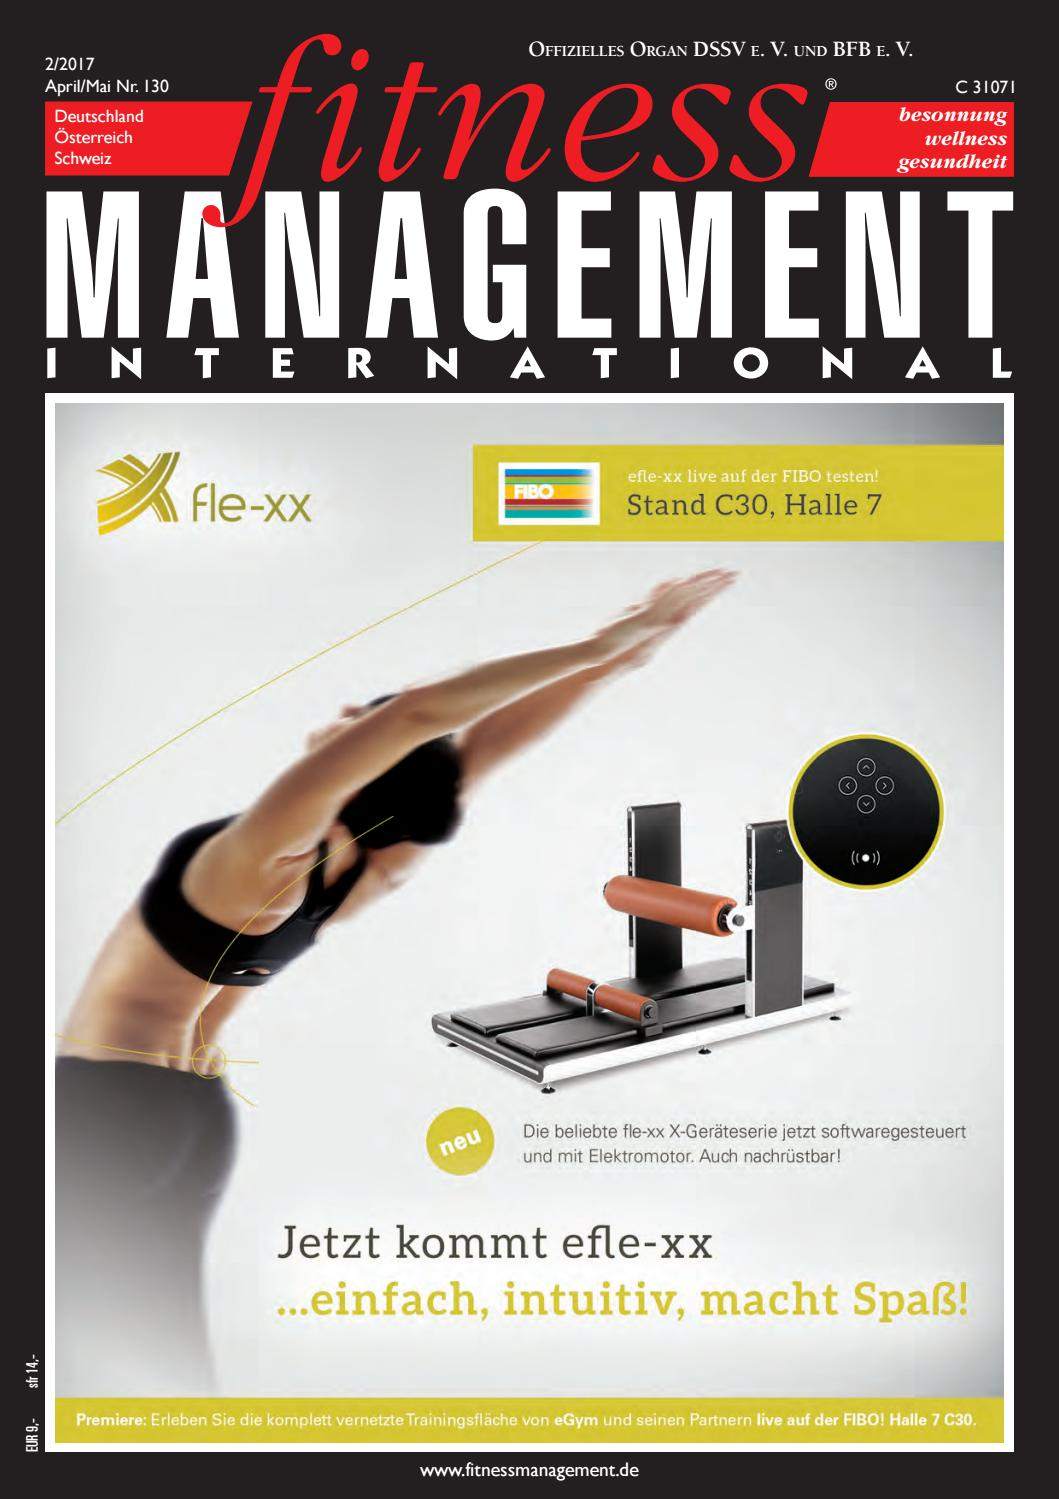 fitness MANAGEMENT international 02/17 by fitness MANAGEMENT ...